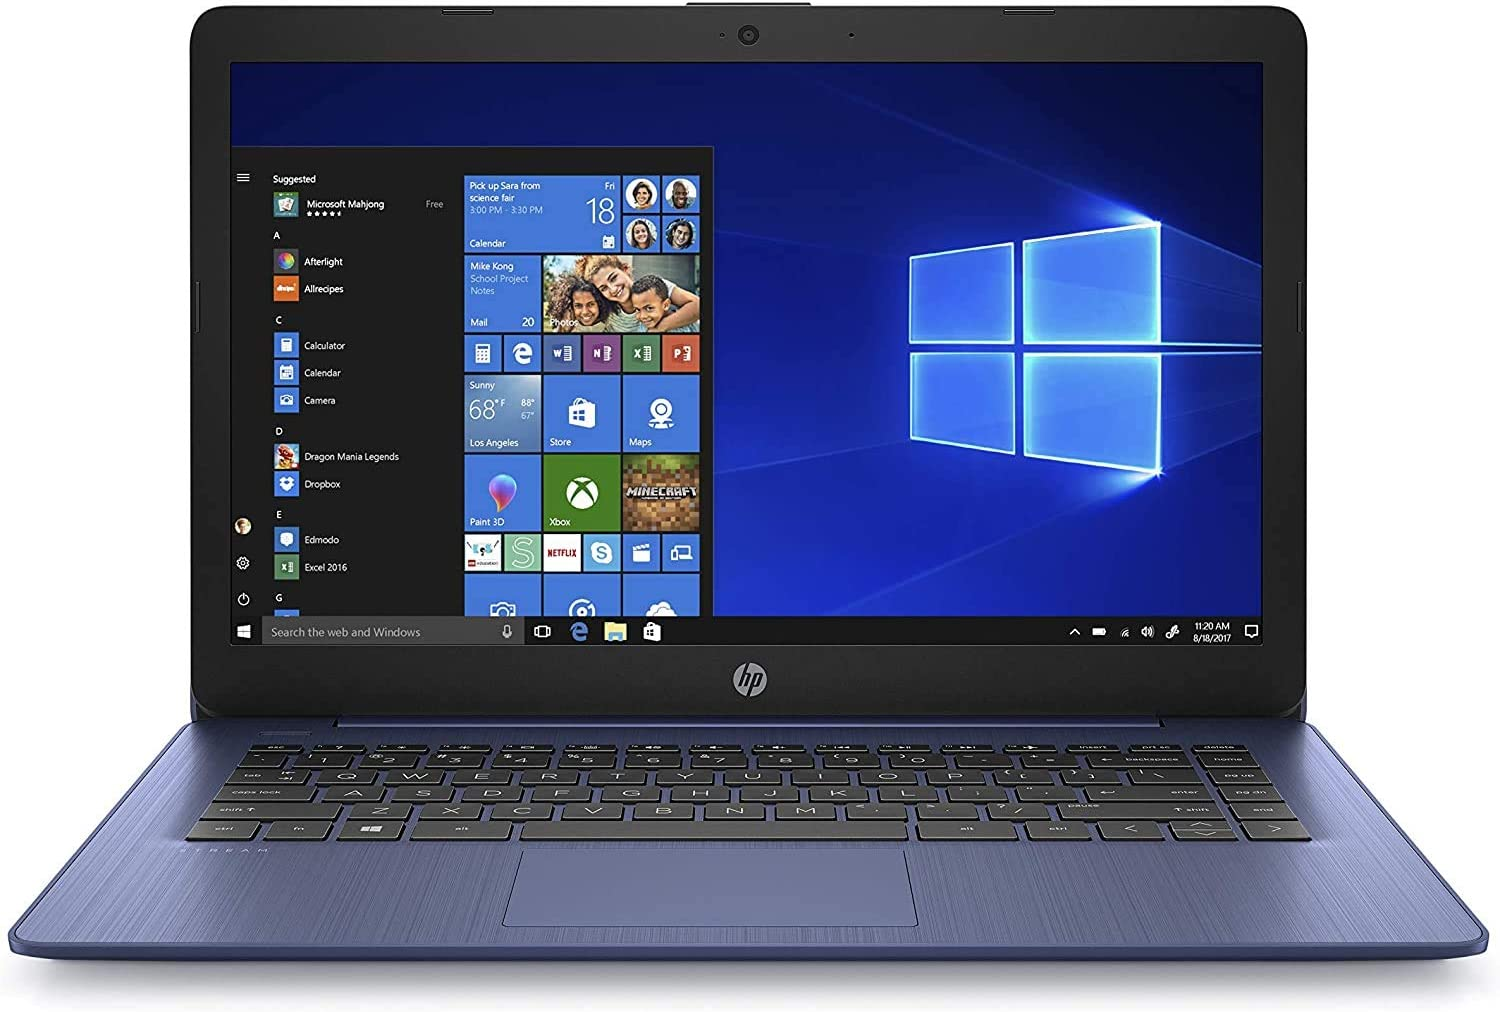 Deals on HP Stream 11-ak0090wm 11.6-inch Laptop, Celeron 4GB RAM